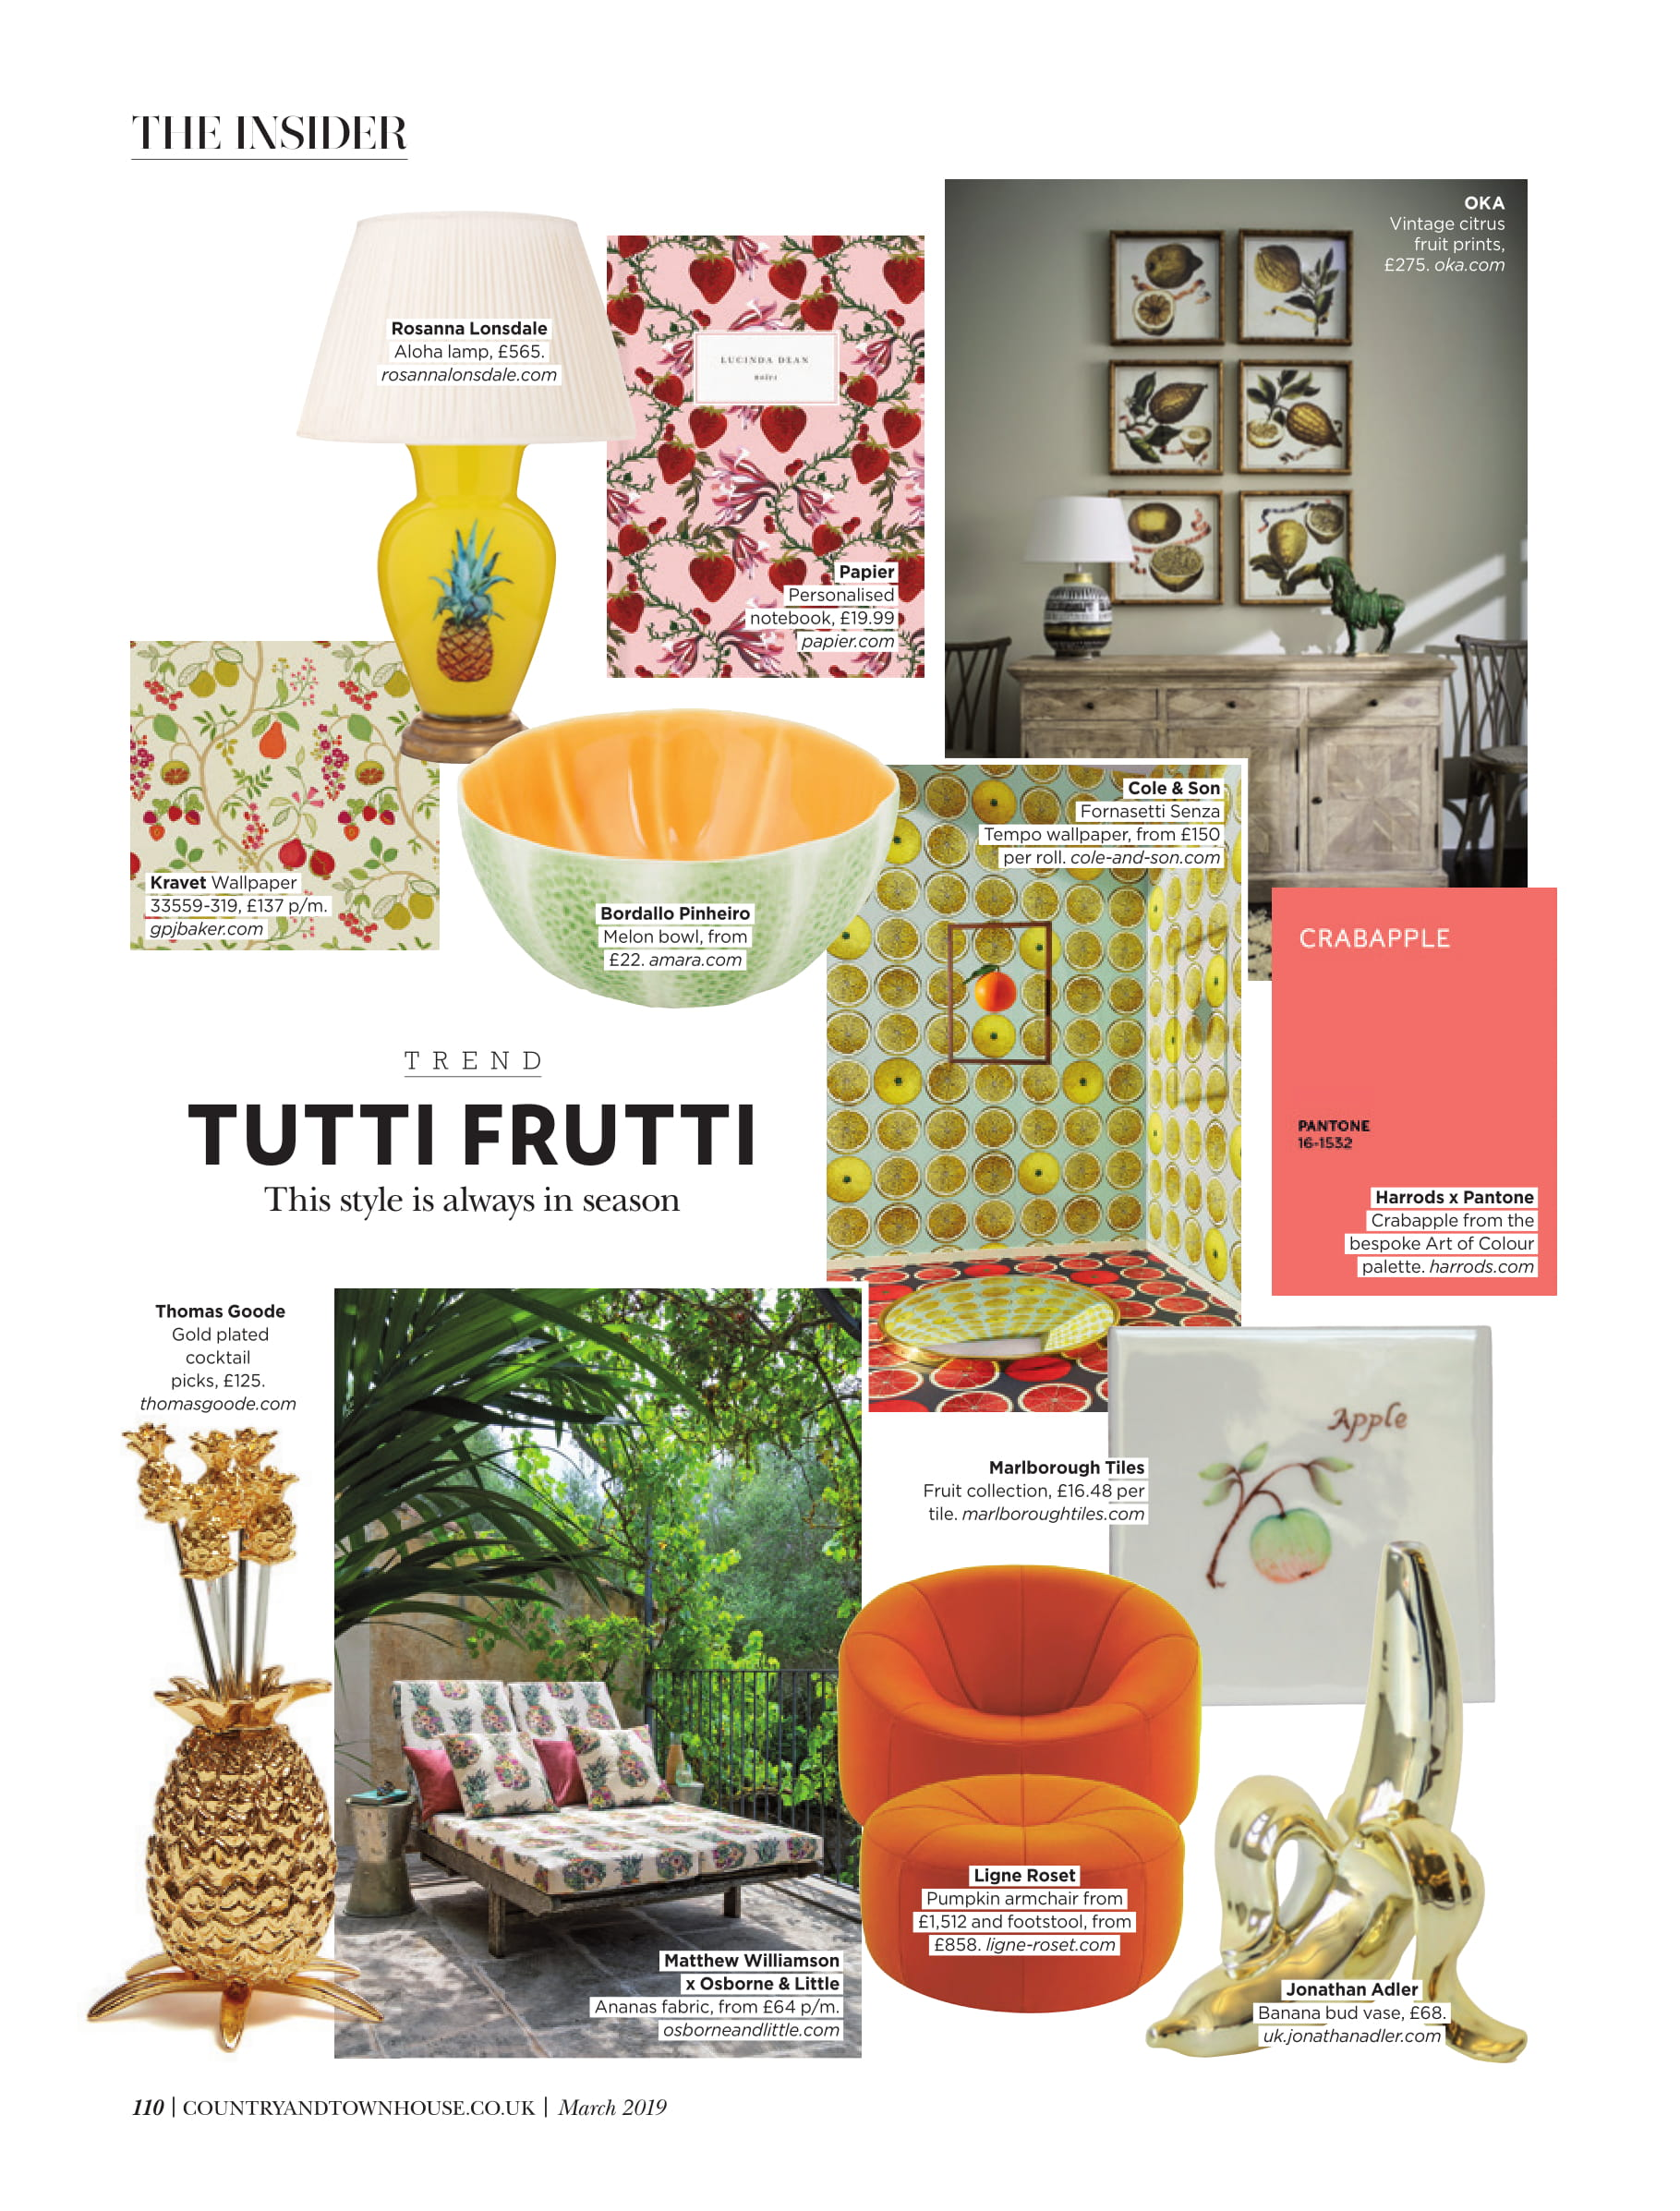 Ligne Roset and Jonathan Adler looking juicy in Country & Town House